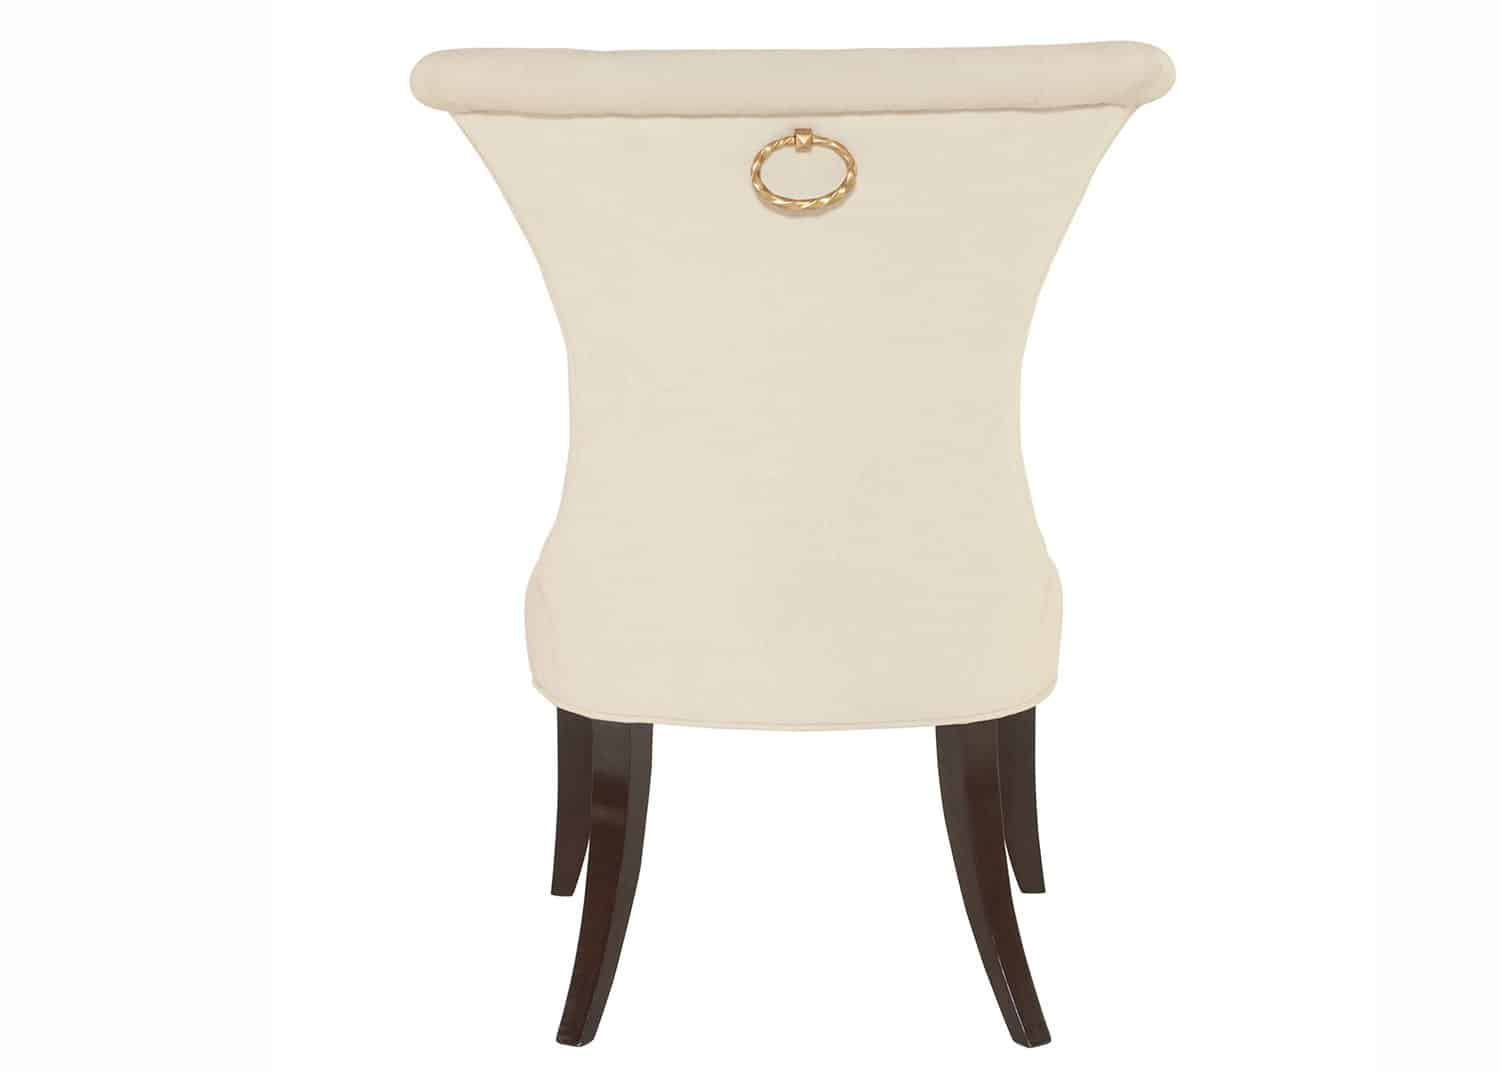 contemporay side chair